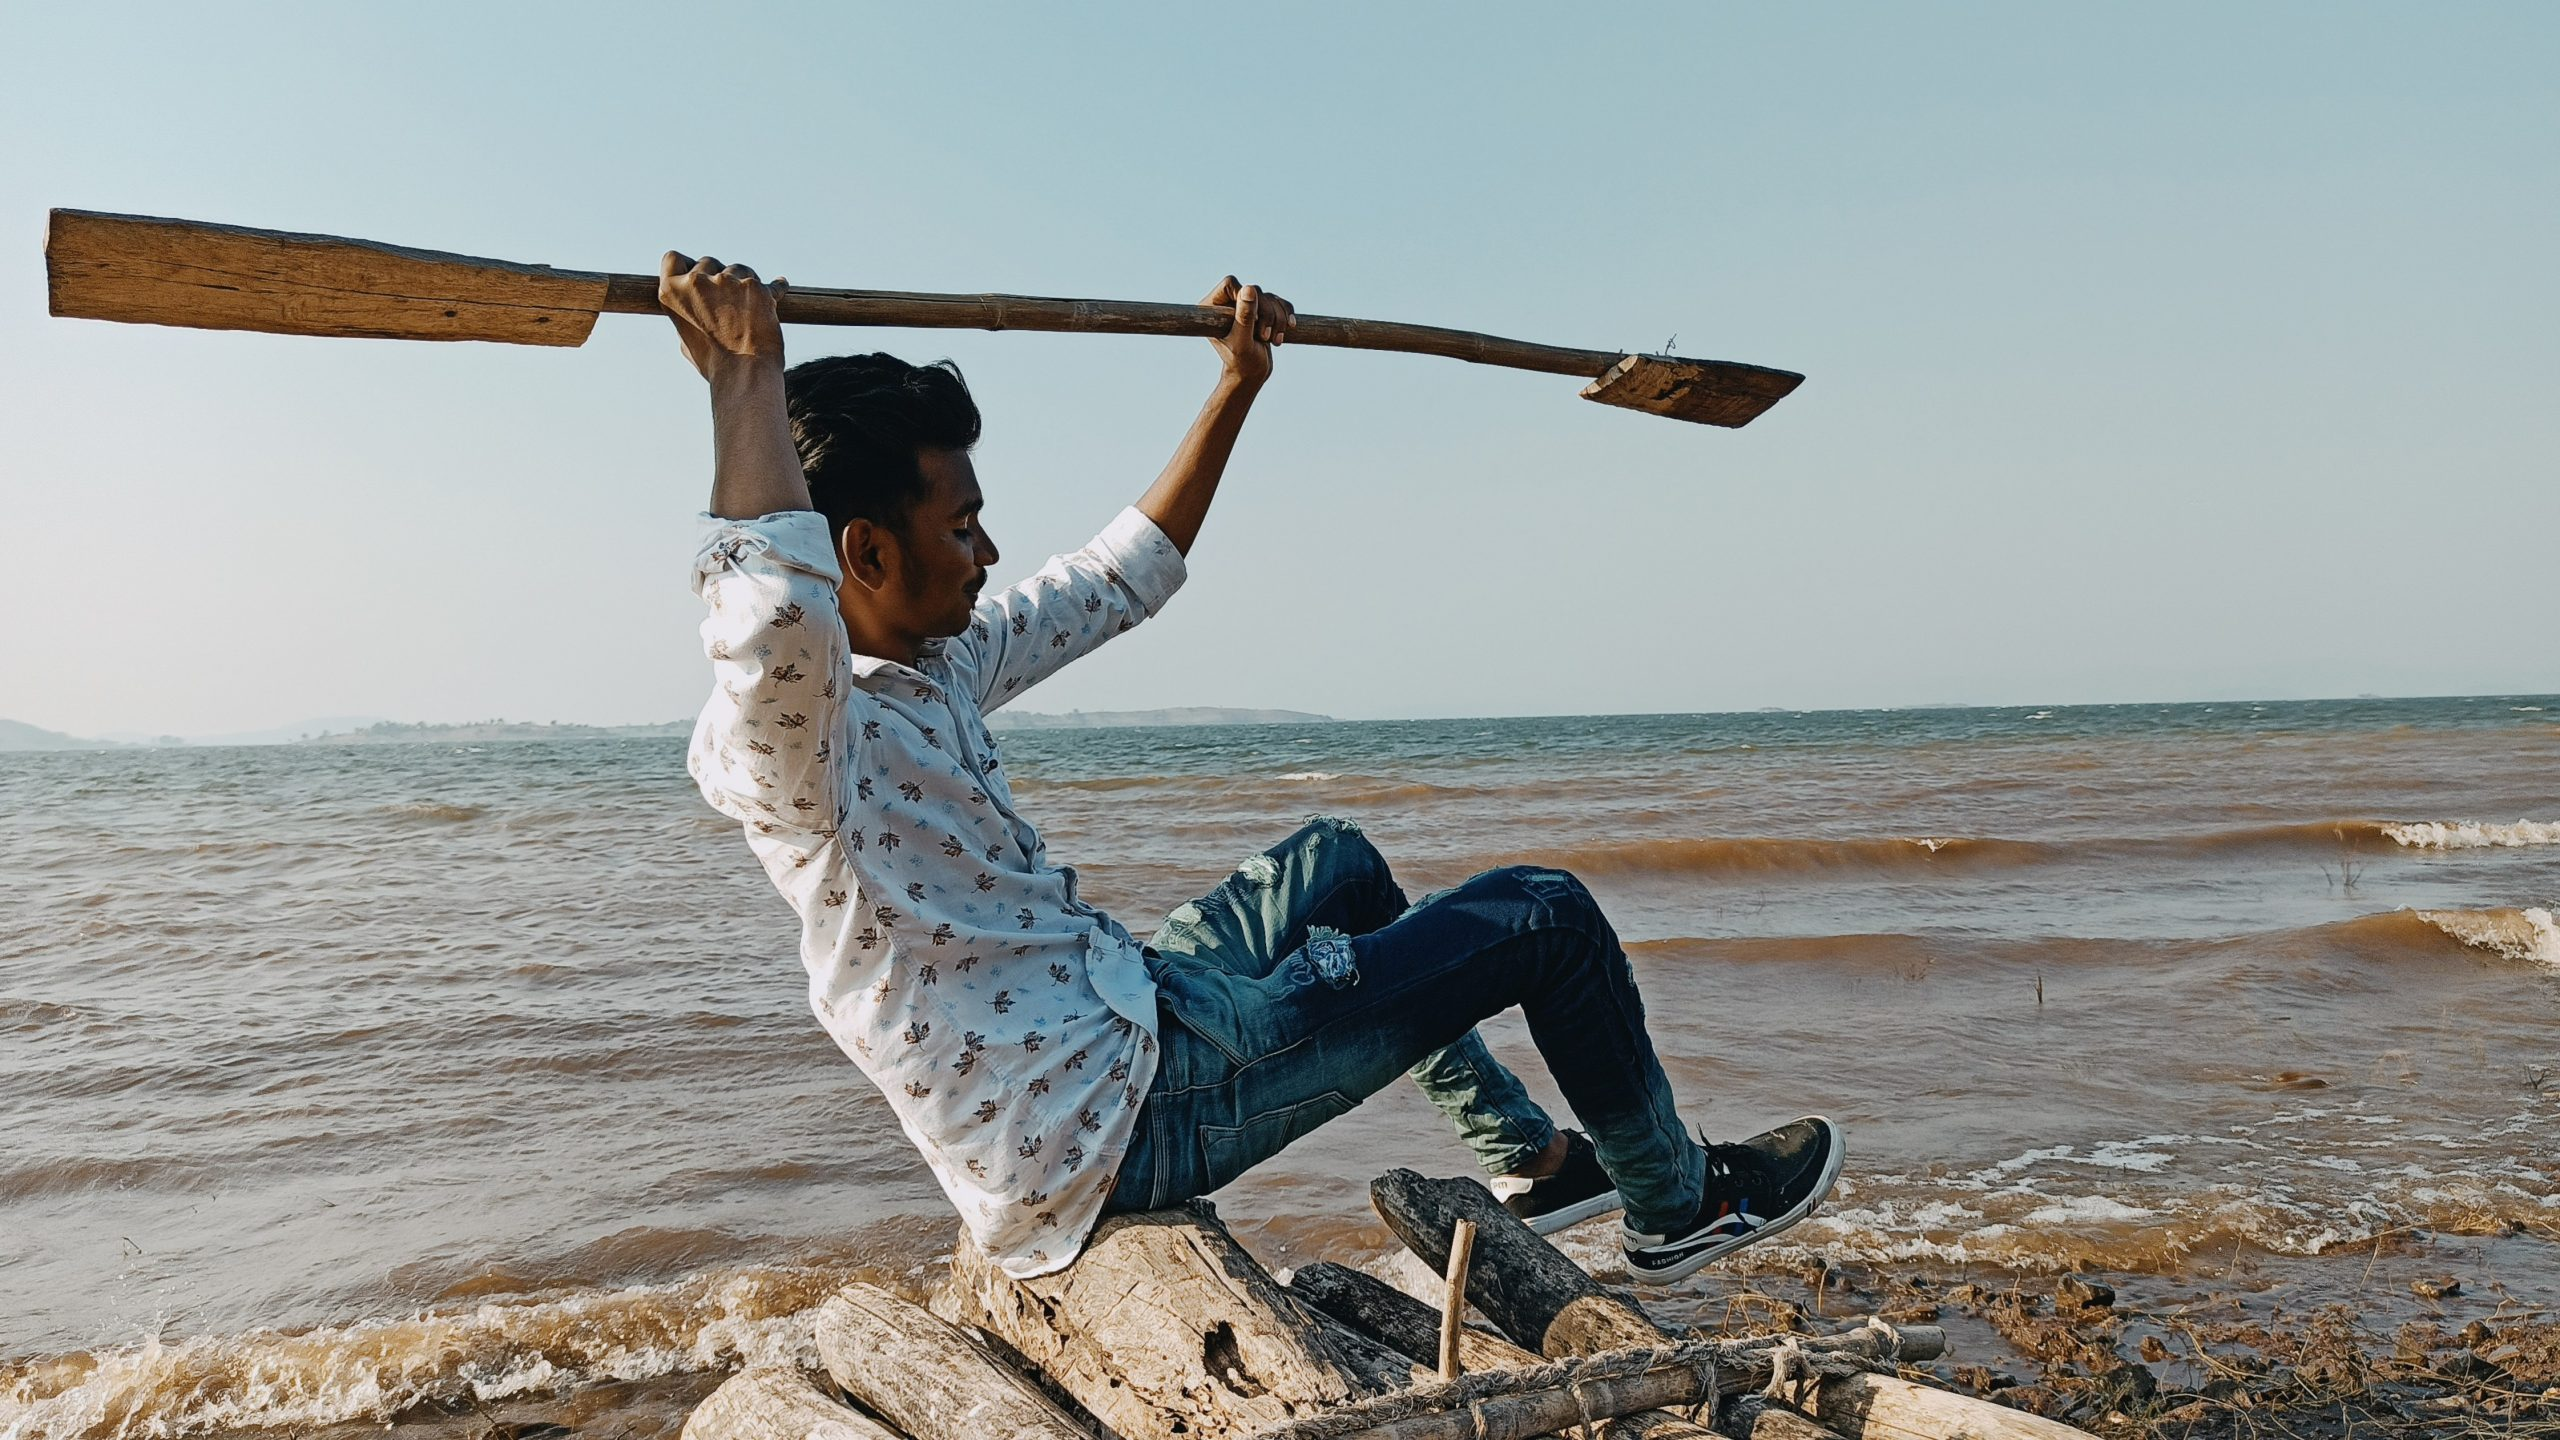 A boy on a wooden boat